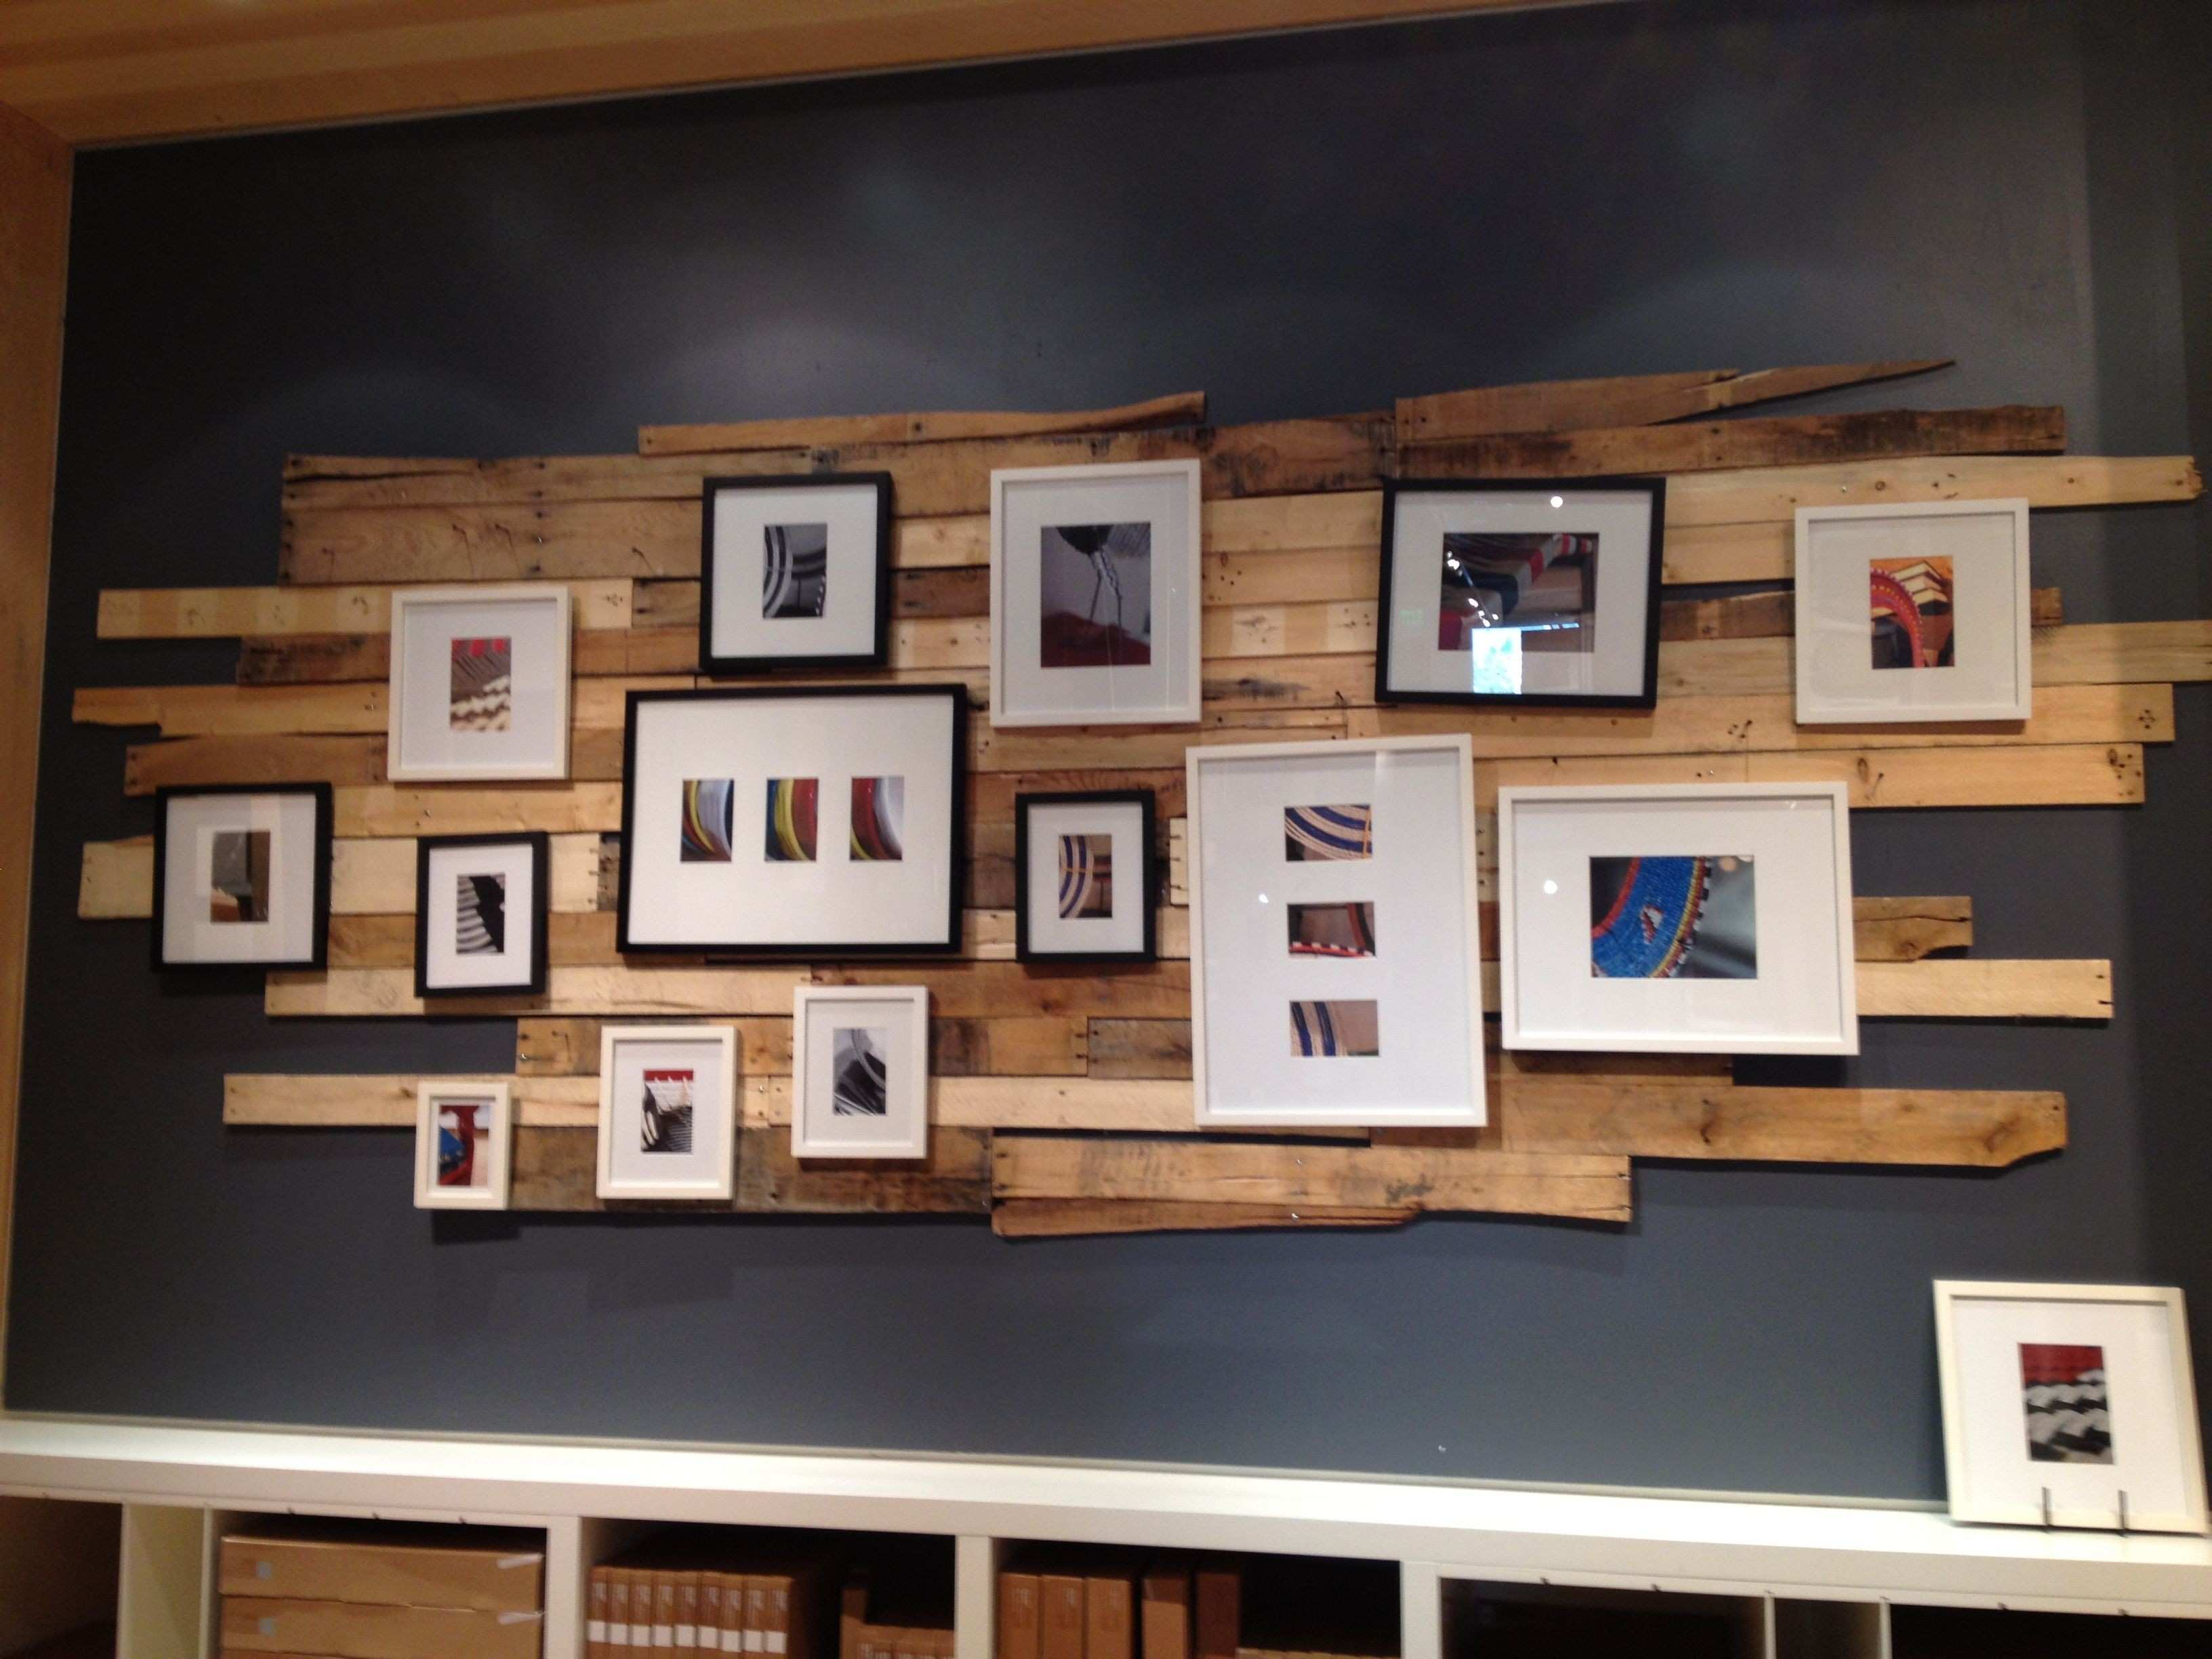 Wall Decor Plus More Employees At Work In The Shop 13 S Home Design